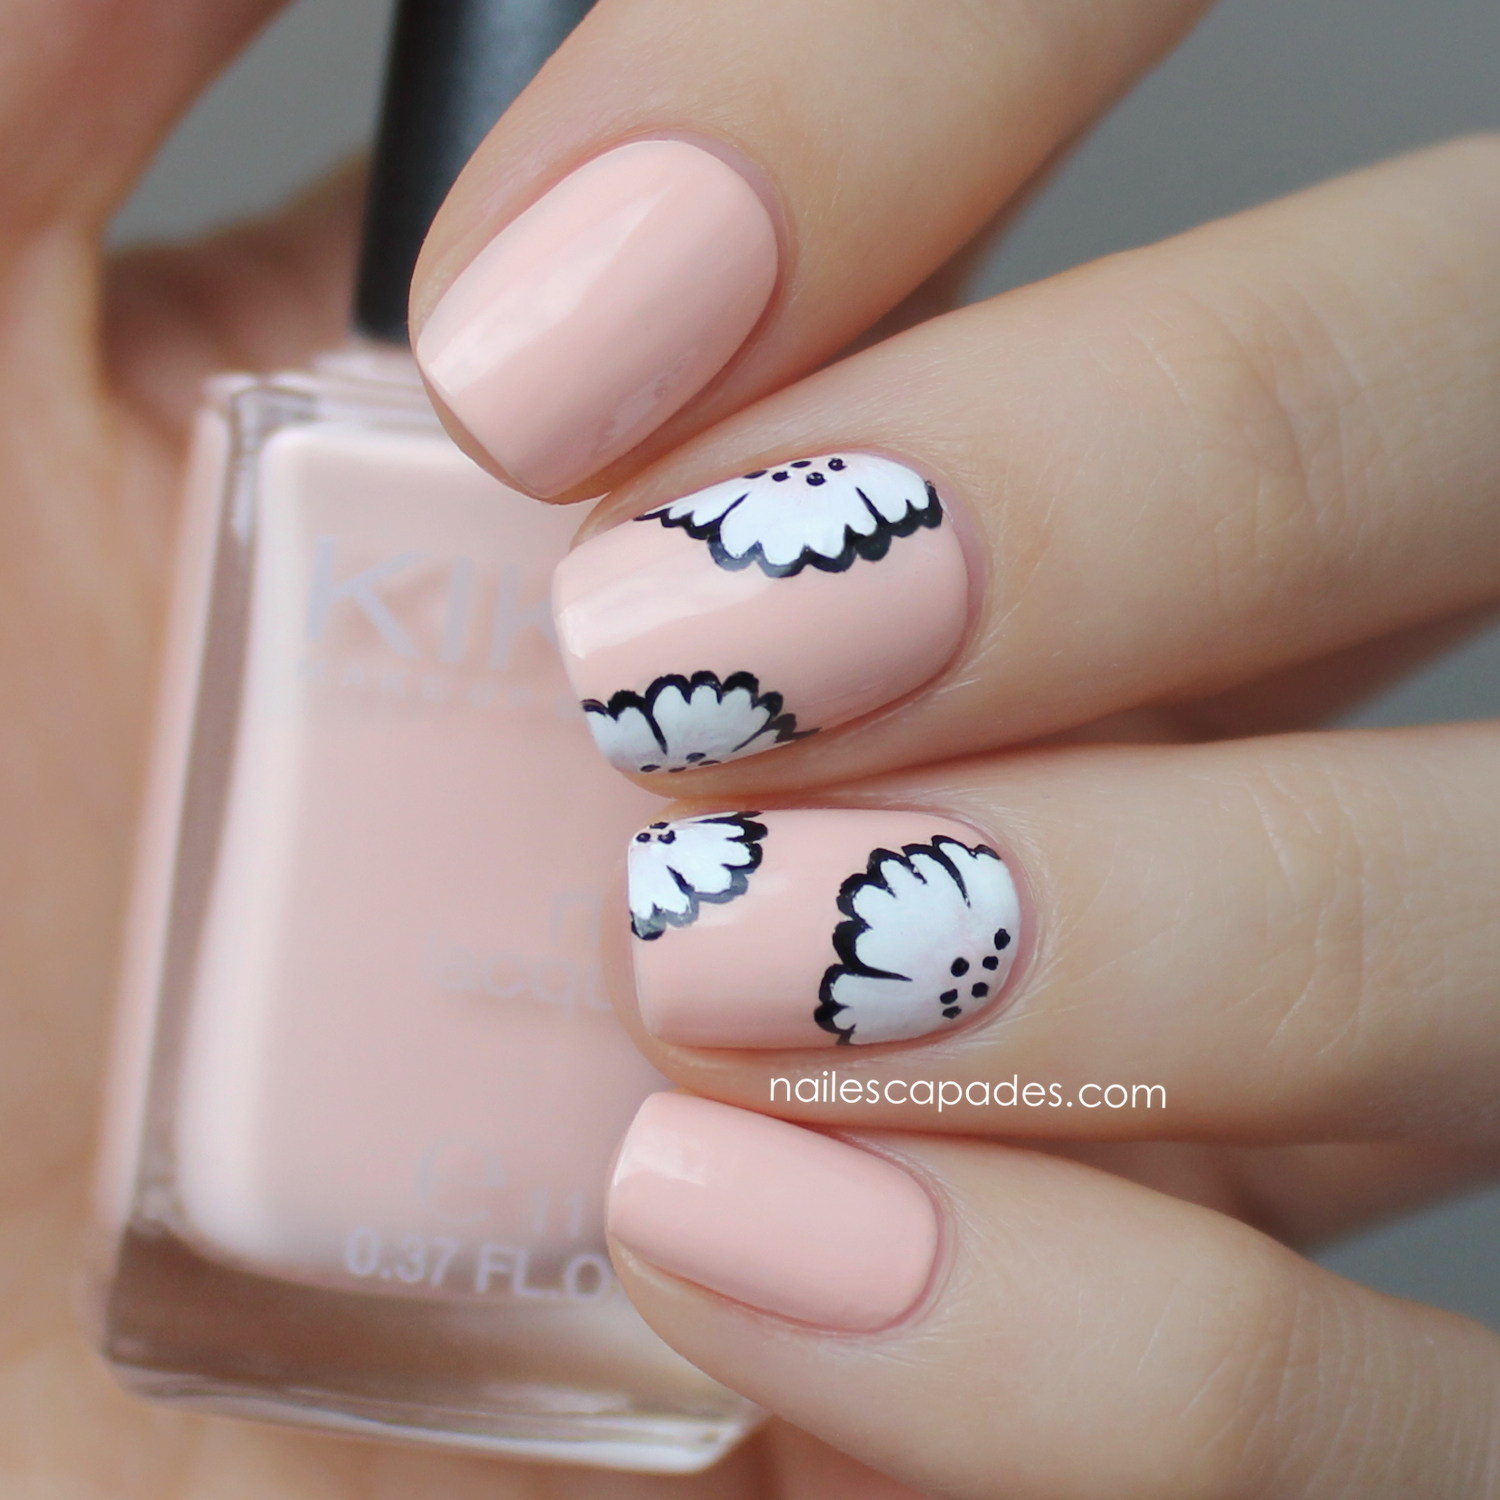 Nail art ideas for short nails manicures designs for shorter nails prinsesfo Images